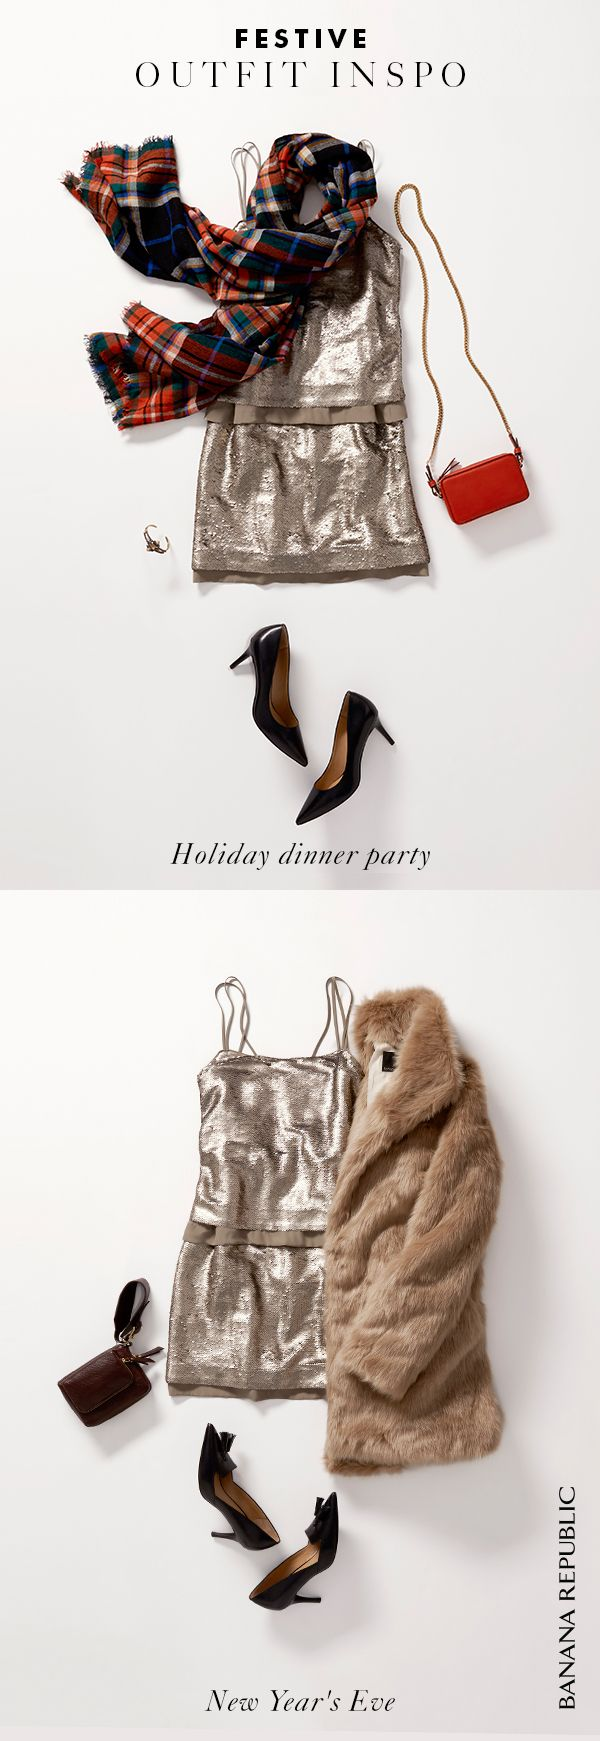 'Tis the season for chock-full social calendars—a dinner party or three, office celebration, family gatherings, New Year's Eve. This silver sequin dress was meant for every occasion on your list. Throw it on with a scarf, evening bag & heels for an indoor event, or head out on the town wearing this flirty frock with a faux fur coat, pumps and a chic clutch.